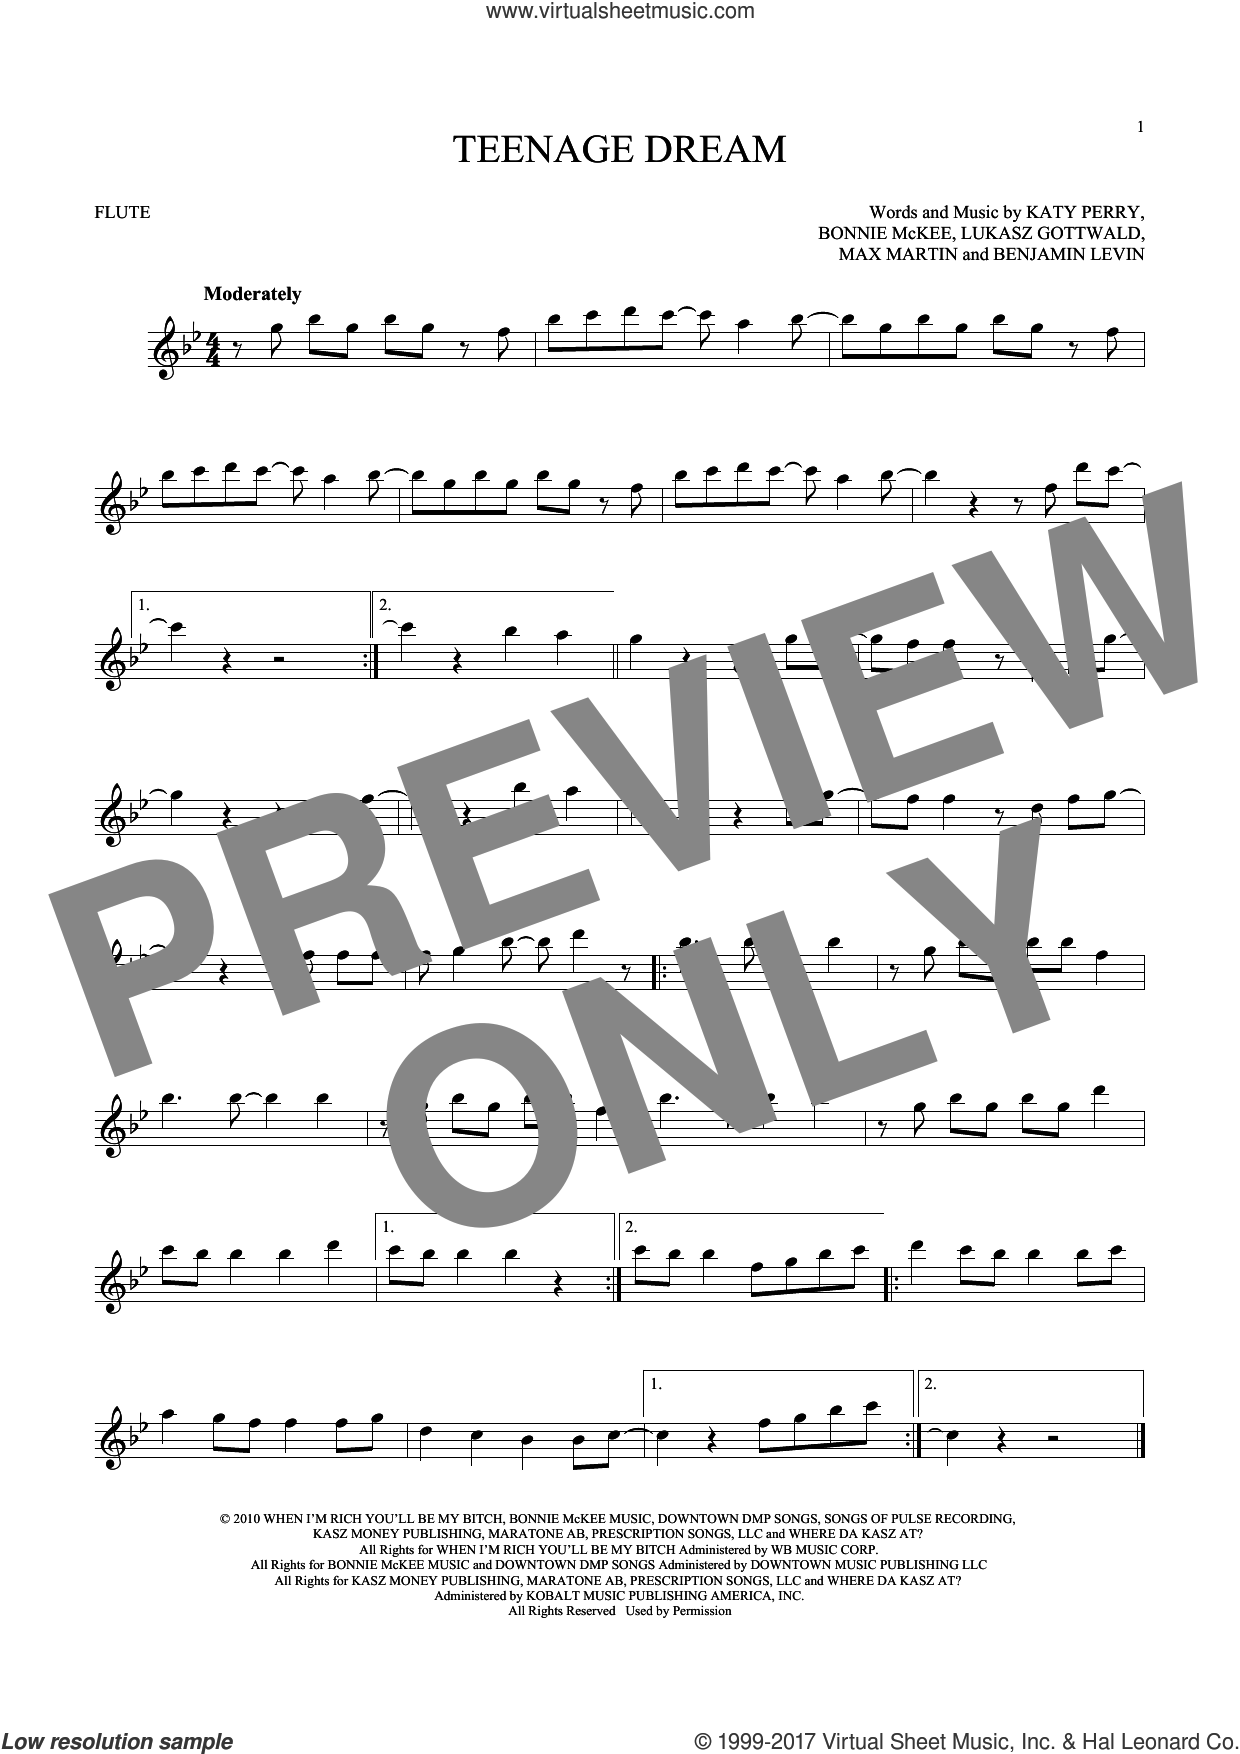 Teenage Dream sheet music for flute solo by Katy Perry, Benjamin Levin, Bonnie McKee, Lukasz Gottwald and Max Martin, intermediate skill level